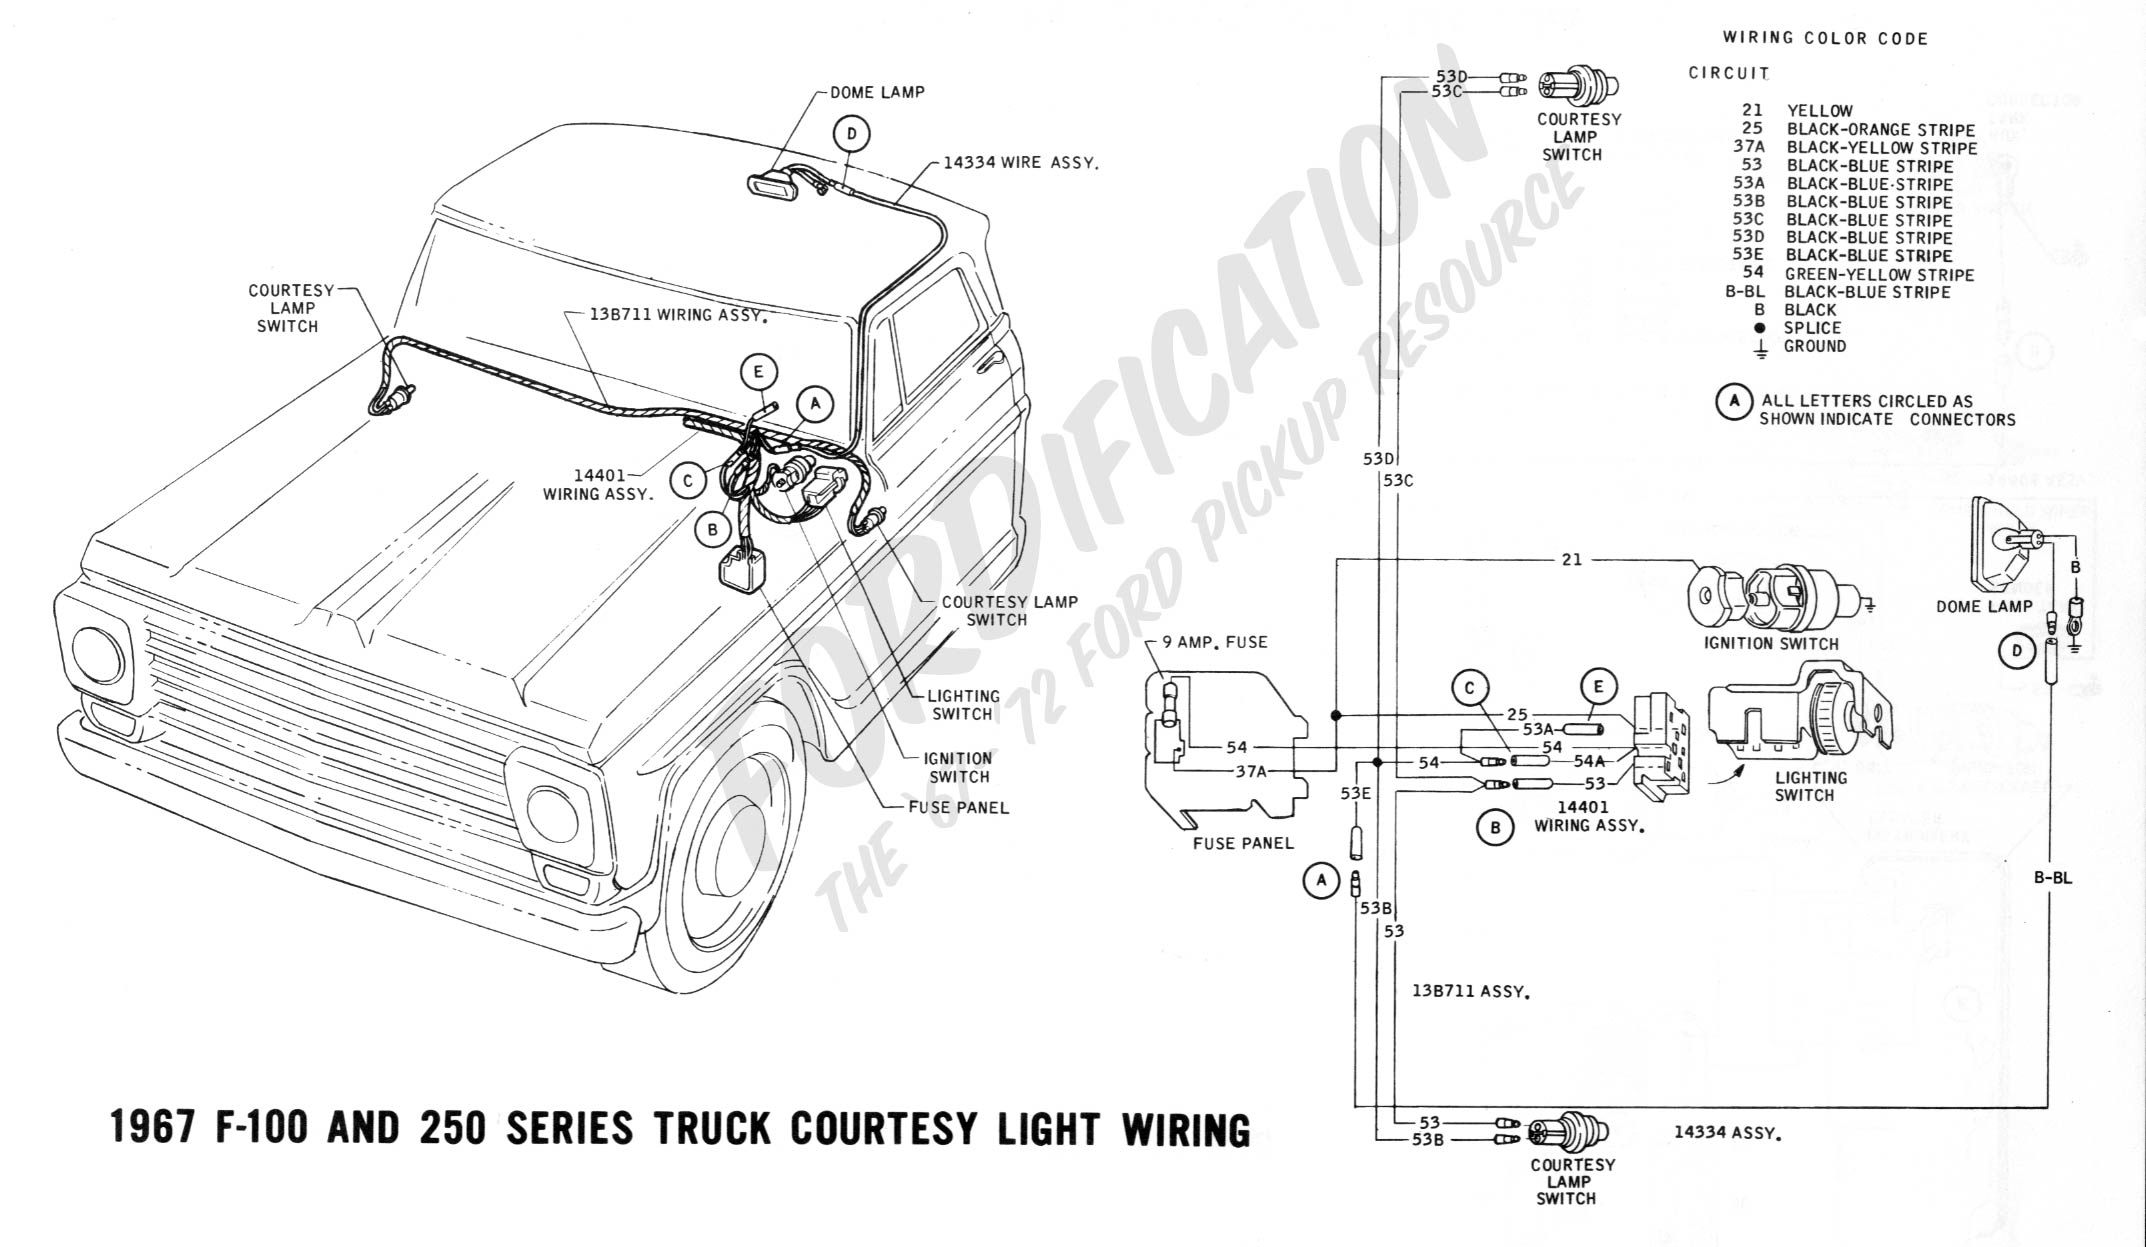 wiring 1967courtesylight ford truck technical drawings and schematics section h wiring Ford Electronic Ignition Wiring Diagram at n-0.co